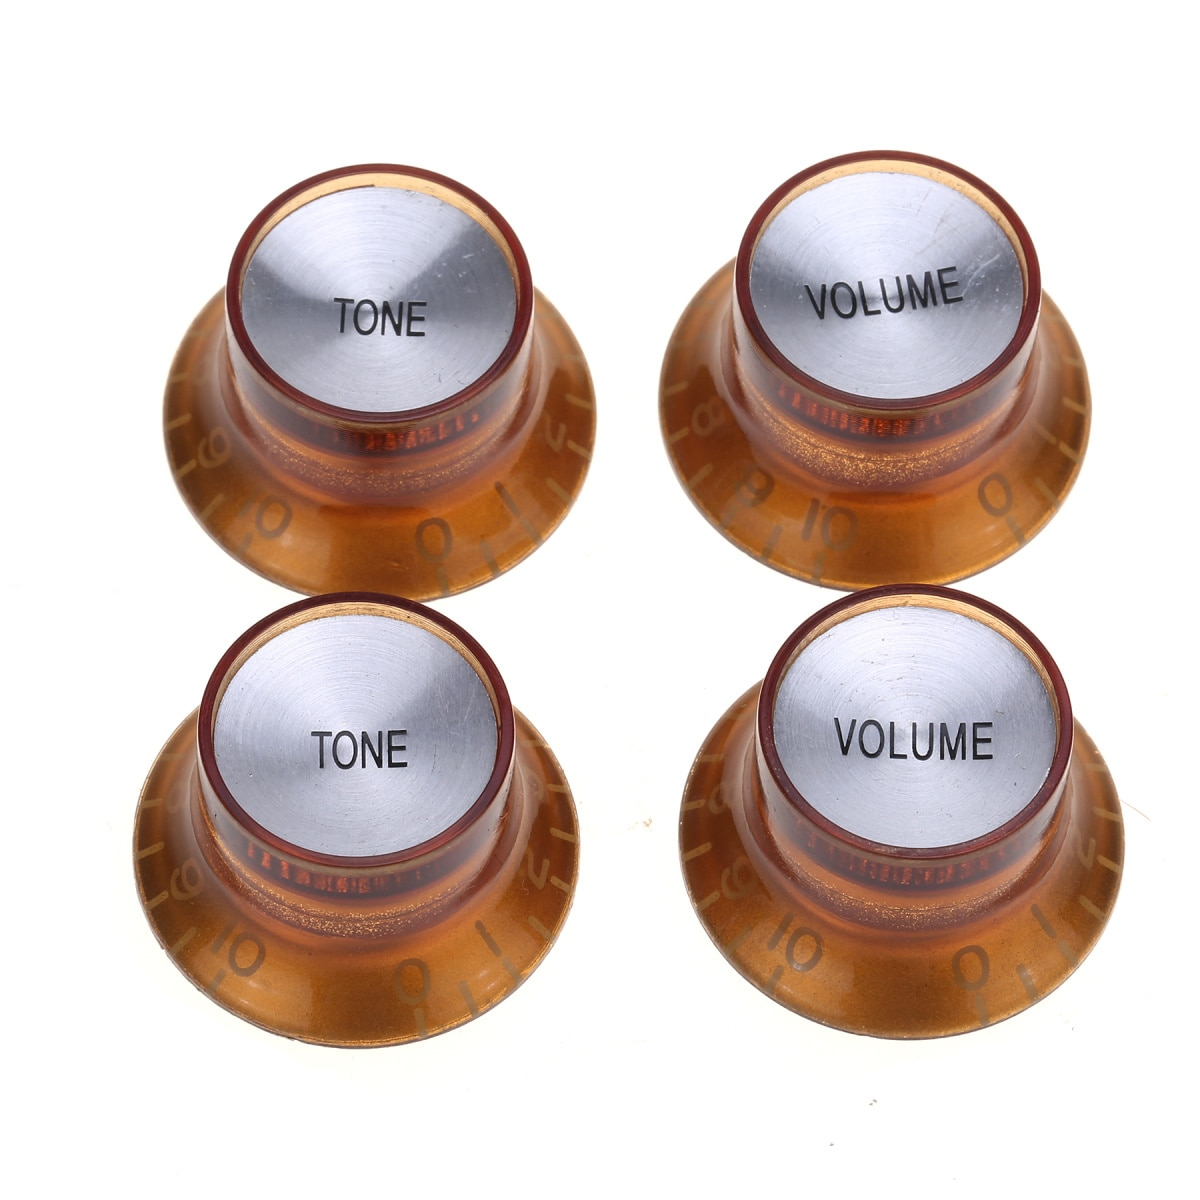 Musiclily Pro Inch Size Guitar Reflector Knobs Top Hat Bell 2 Volume 2 Tone Knobs for USA Made Les Paul SG,Amber with Silver Top